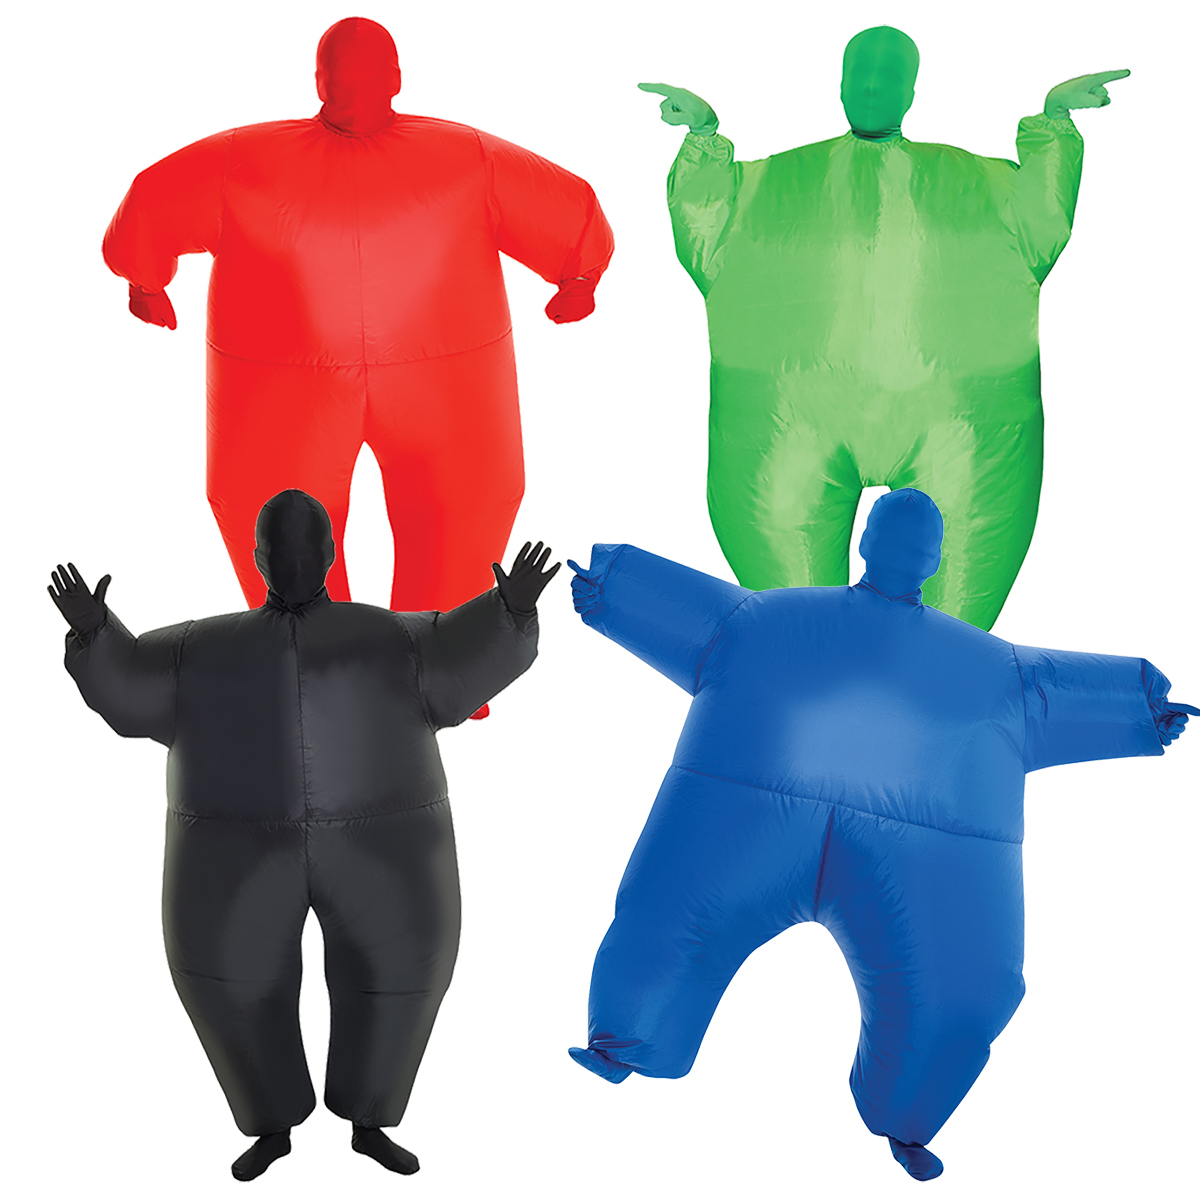 Morphsuit inflatable costume